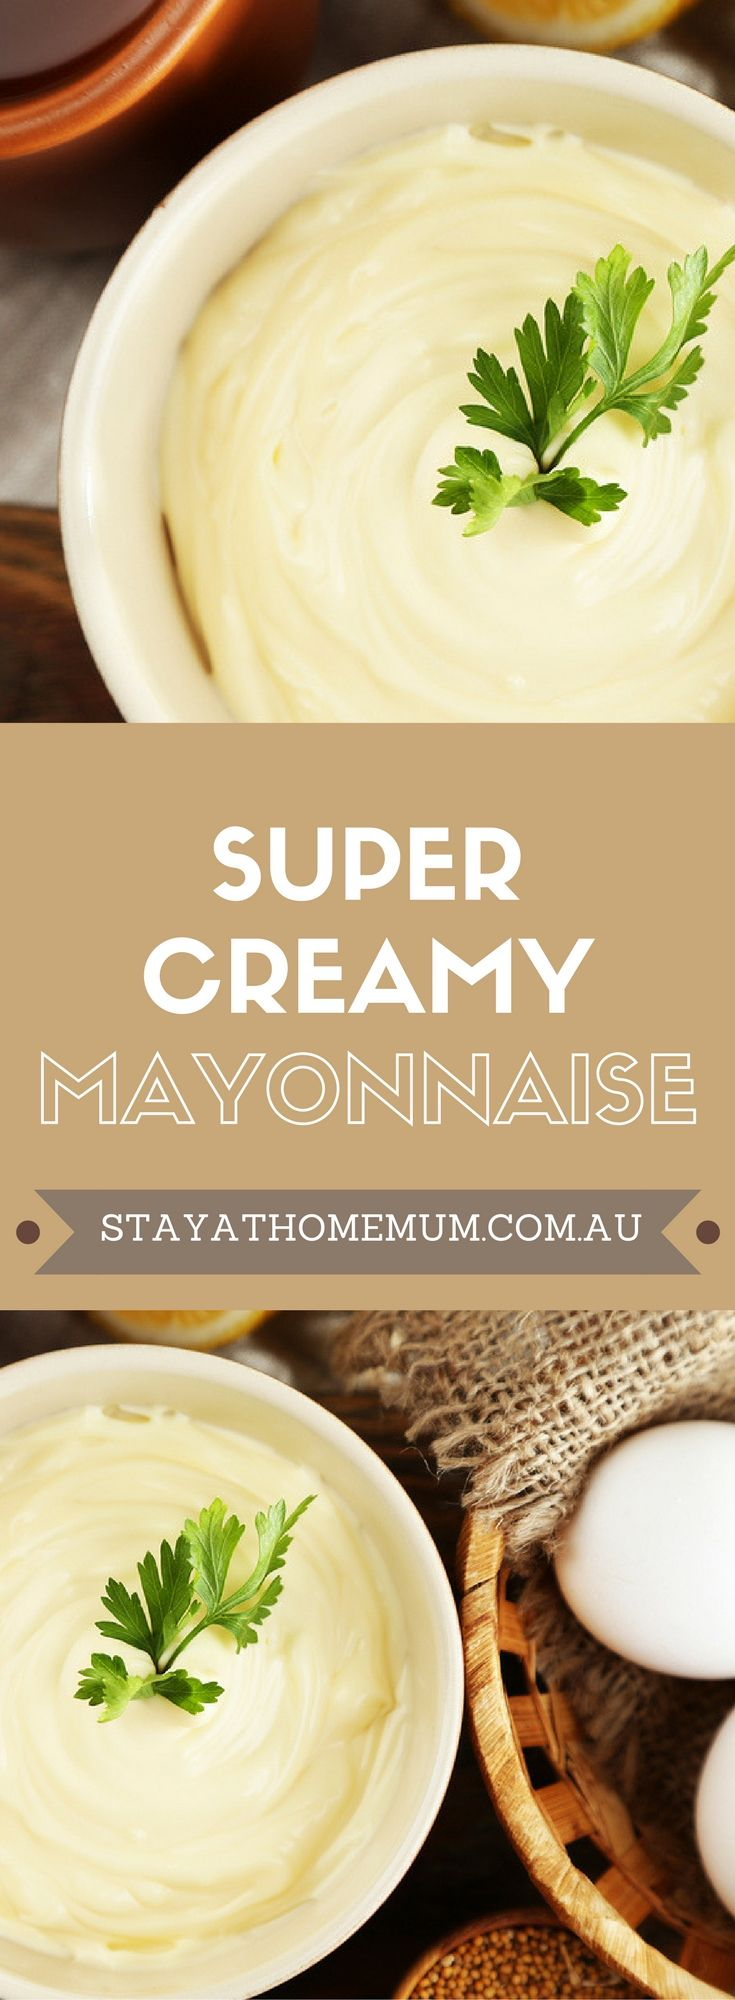 We love homemade mayonnaise, particularly when it's this Super Creamy Mayonnaise. Not only does this mayonnaise have a fantastic flavour and texture, it also ends up being much better for you than store-bought mayonnaise. #mayonnaiserecipe #recipe #homemademayonnaise